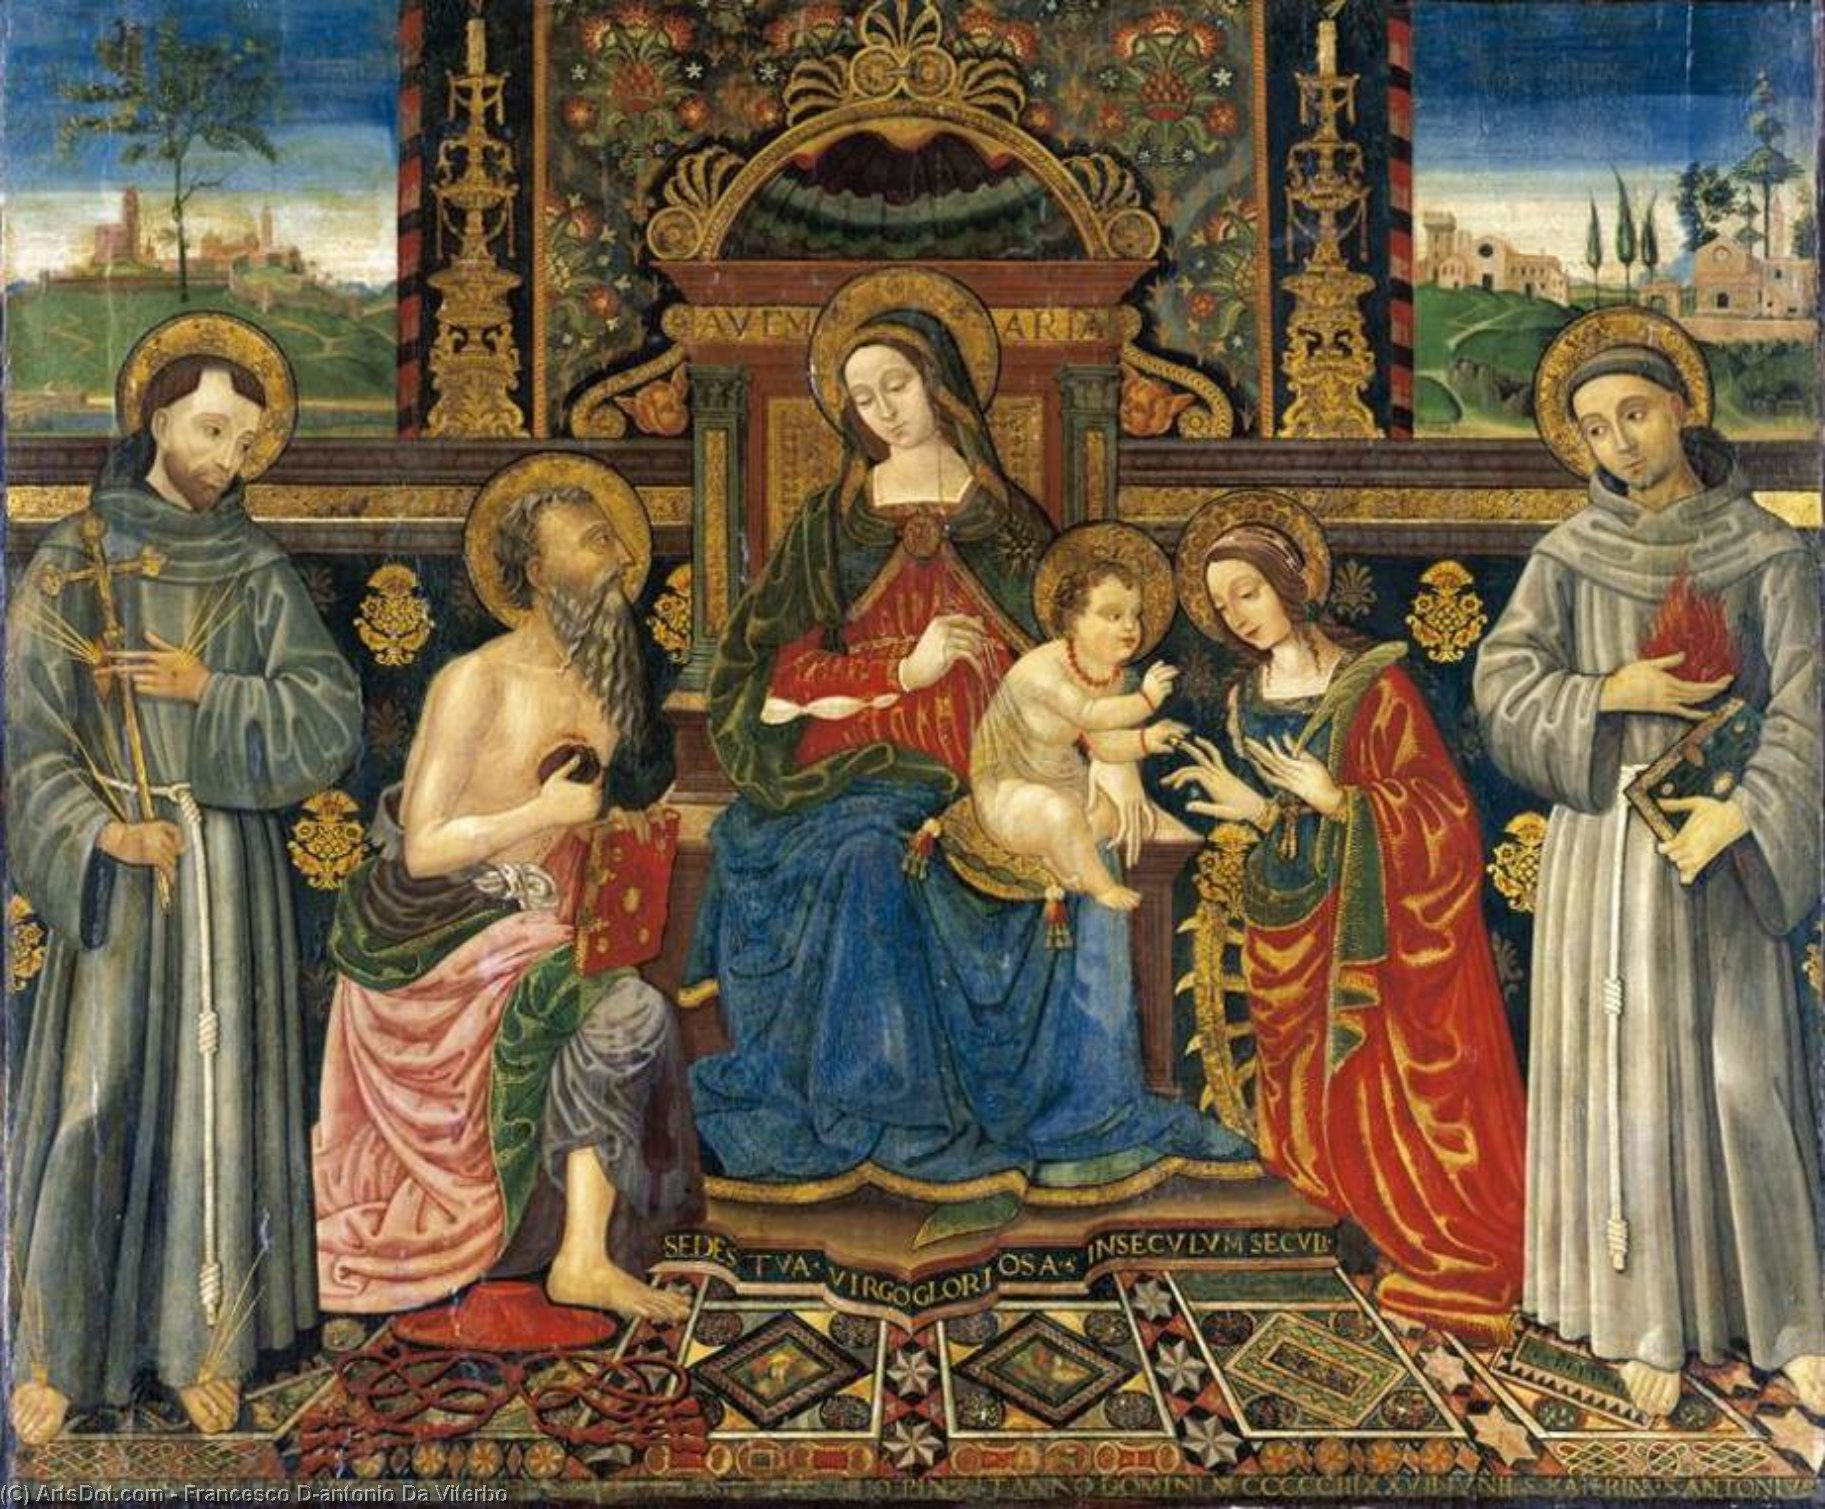 Madonna And Child Enthroned With Saints by Francesco D'antonio Da Viterbo  (order Fine Art oil painting Francesco D'antonio Da Viterbo)